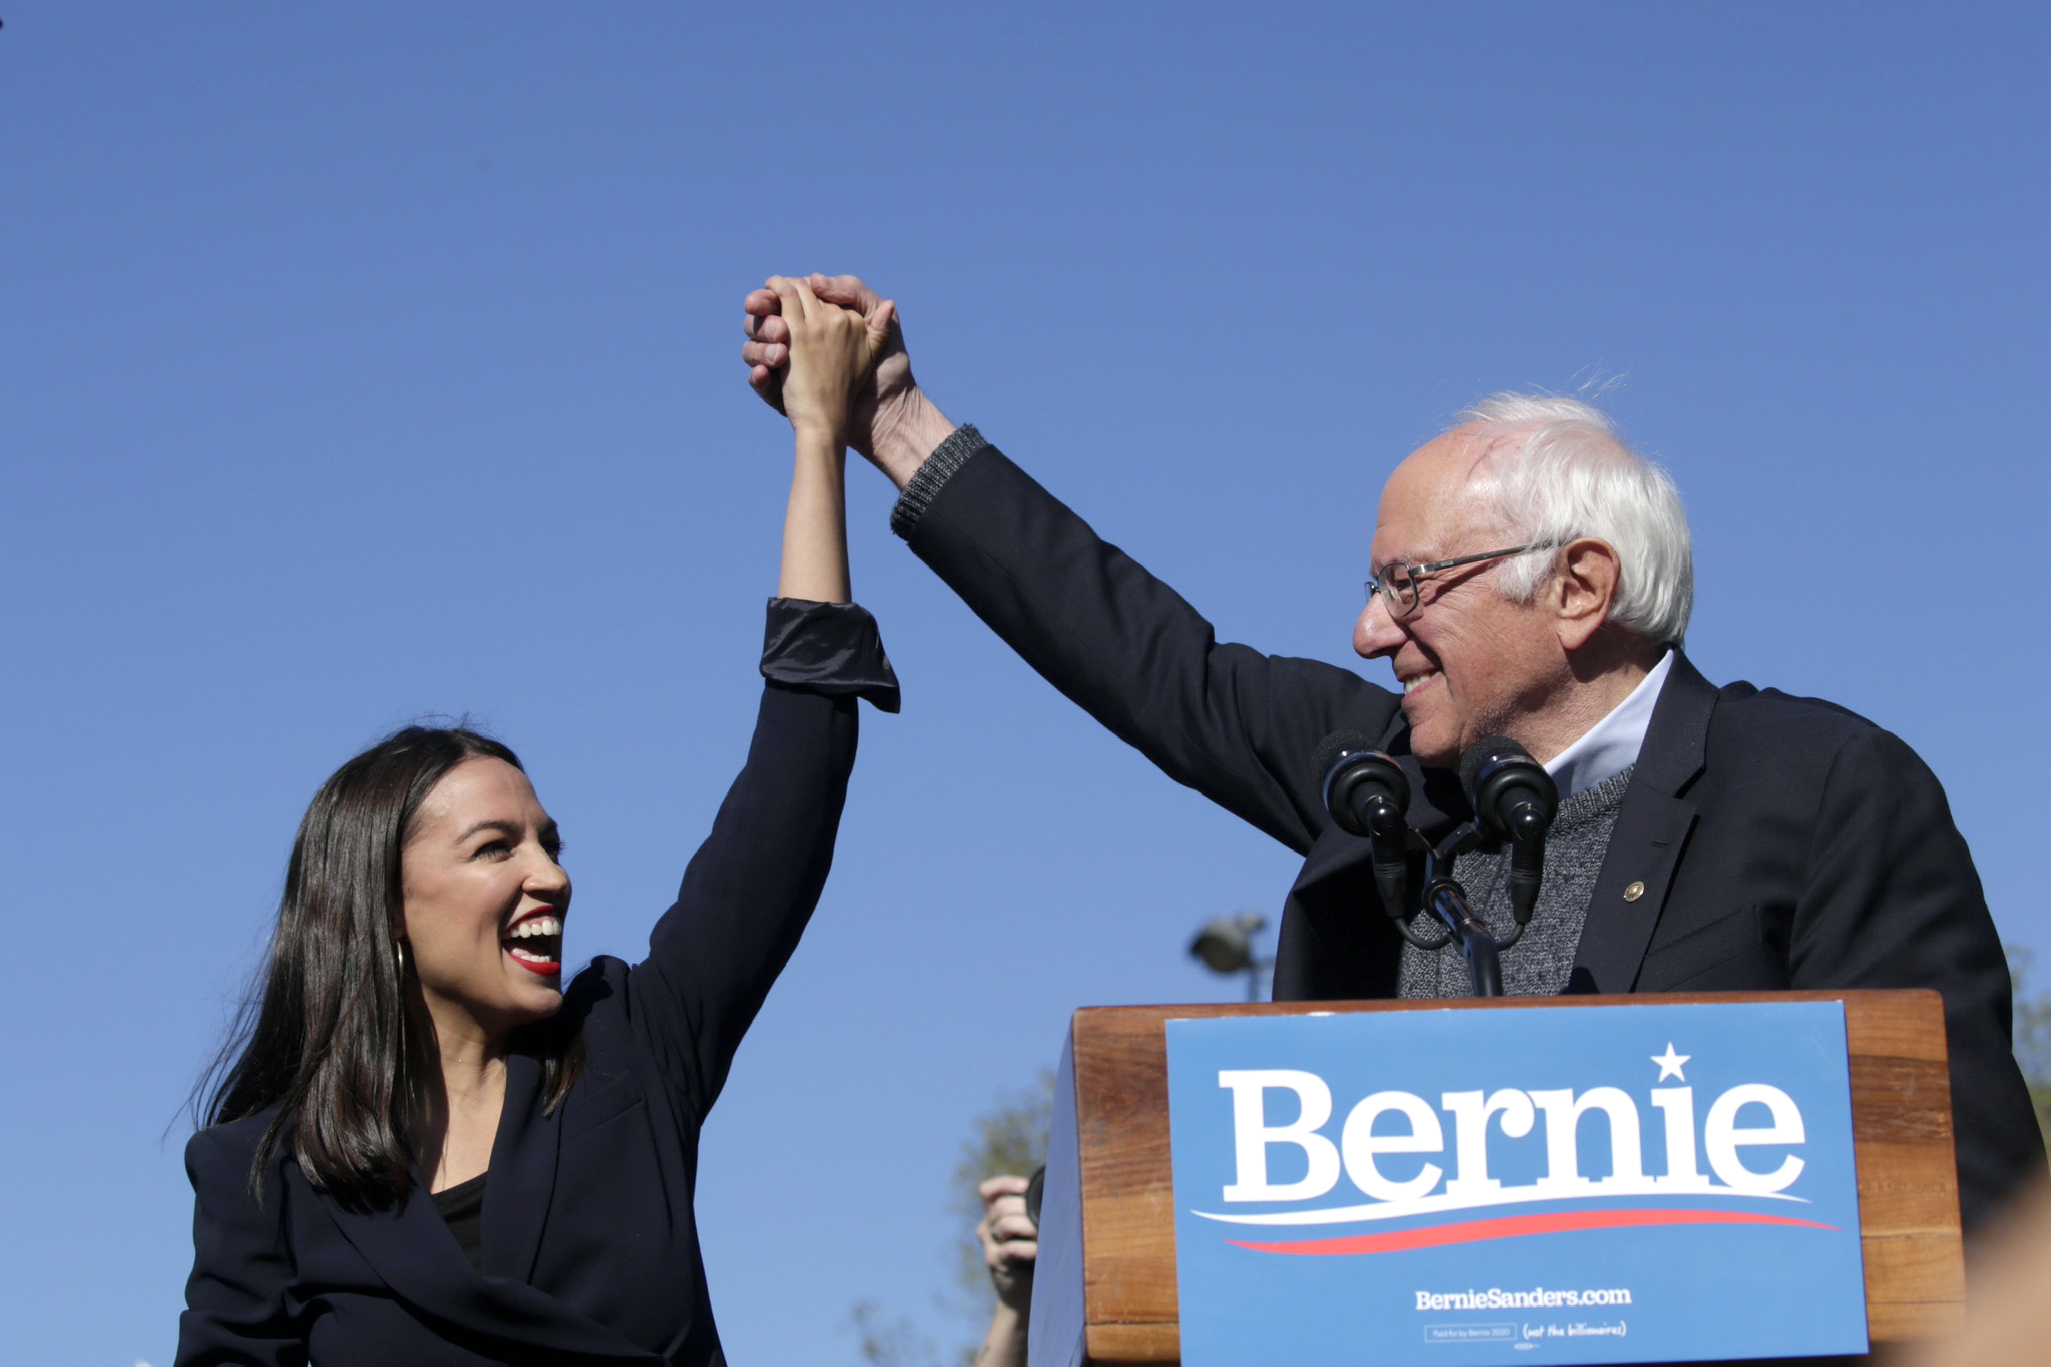 Democratic presidential candidate, Sen. Bernie Sanders (I-VT) holds hands with Rep. Alexandria Ocasio-Cortez (D-NY) during his speech at a campaign rally in Queensbridge Park on October 19, 2019 in the Queens borough of New York City. (Photo by Kena Betancur/Getty Images)